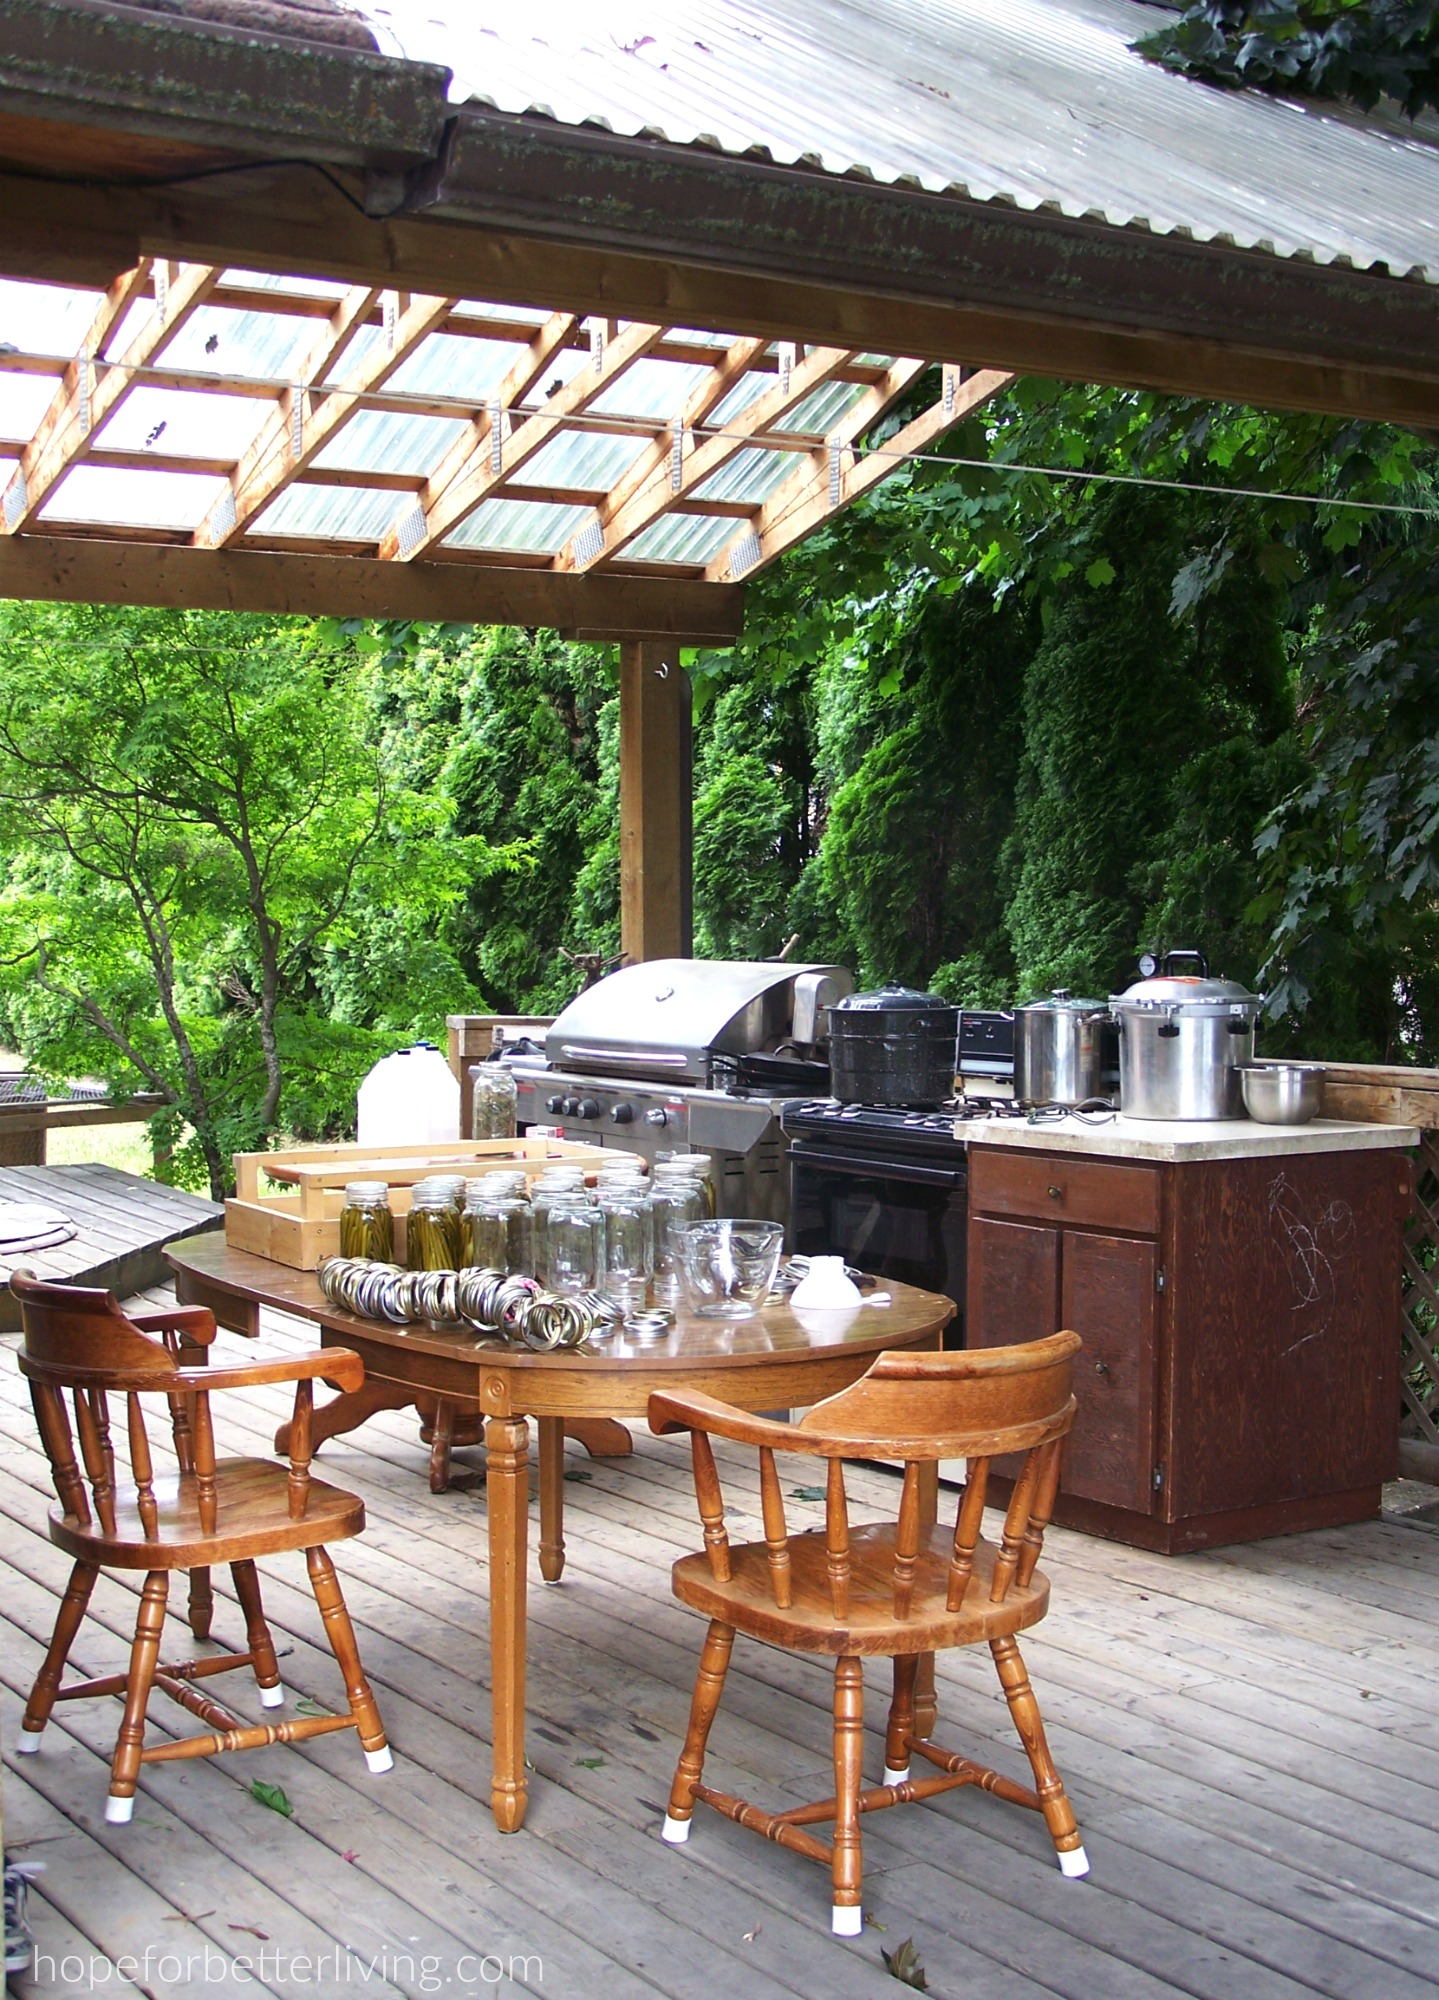 Better Living's Outdoor Canning Kitchen